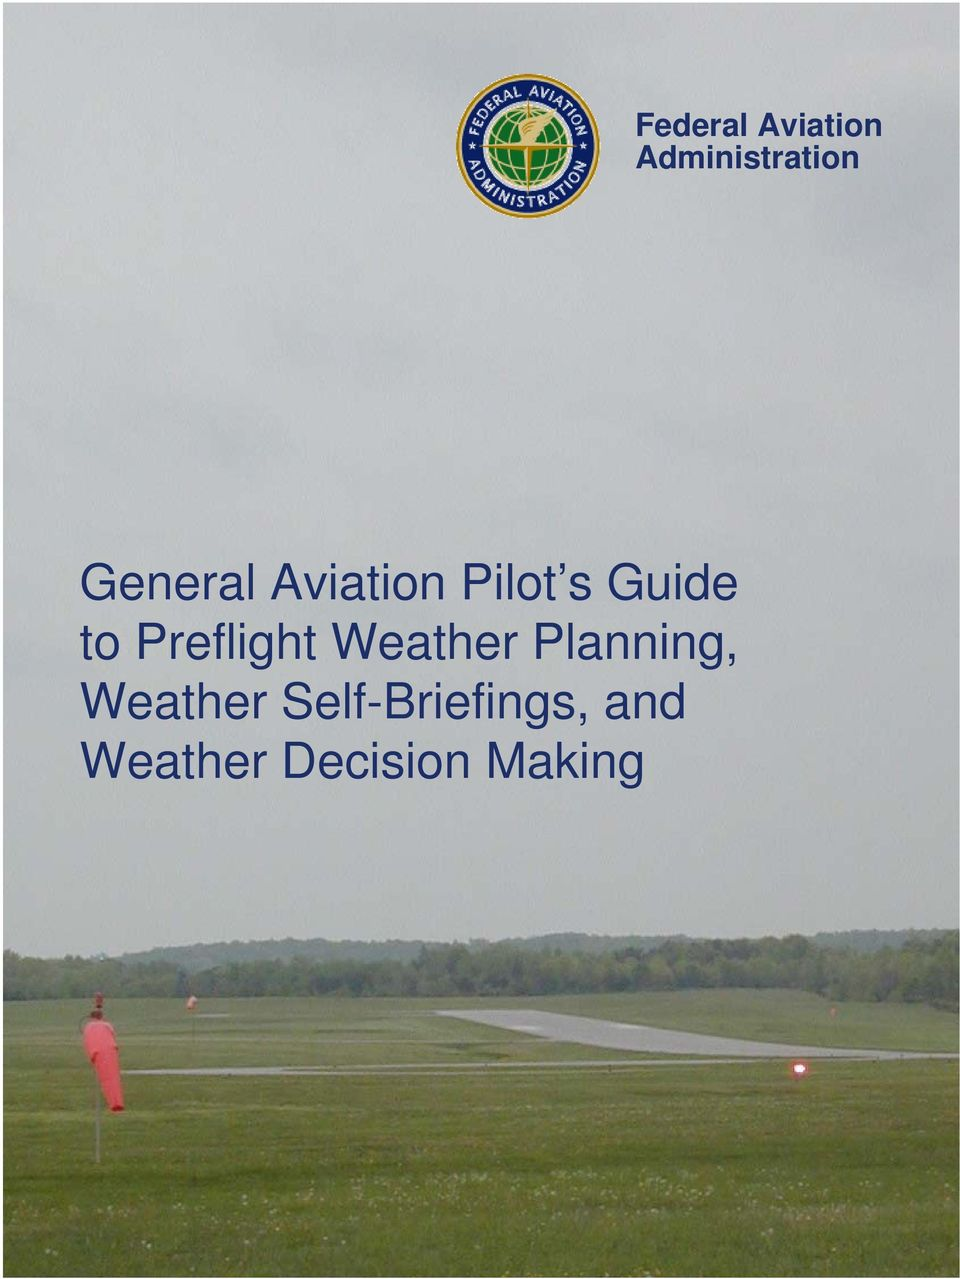 Self-Briefings, and Weather Decision